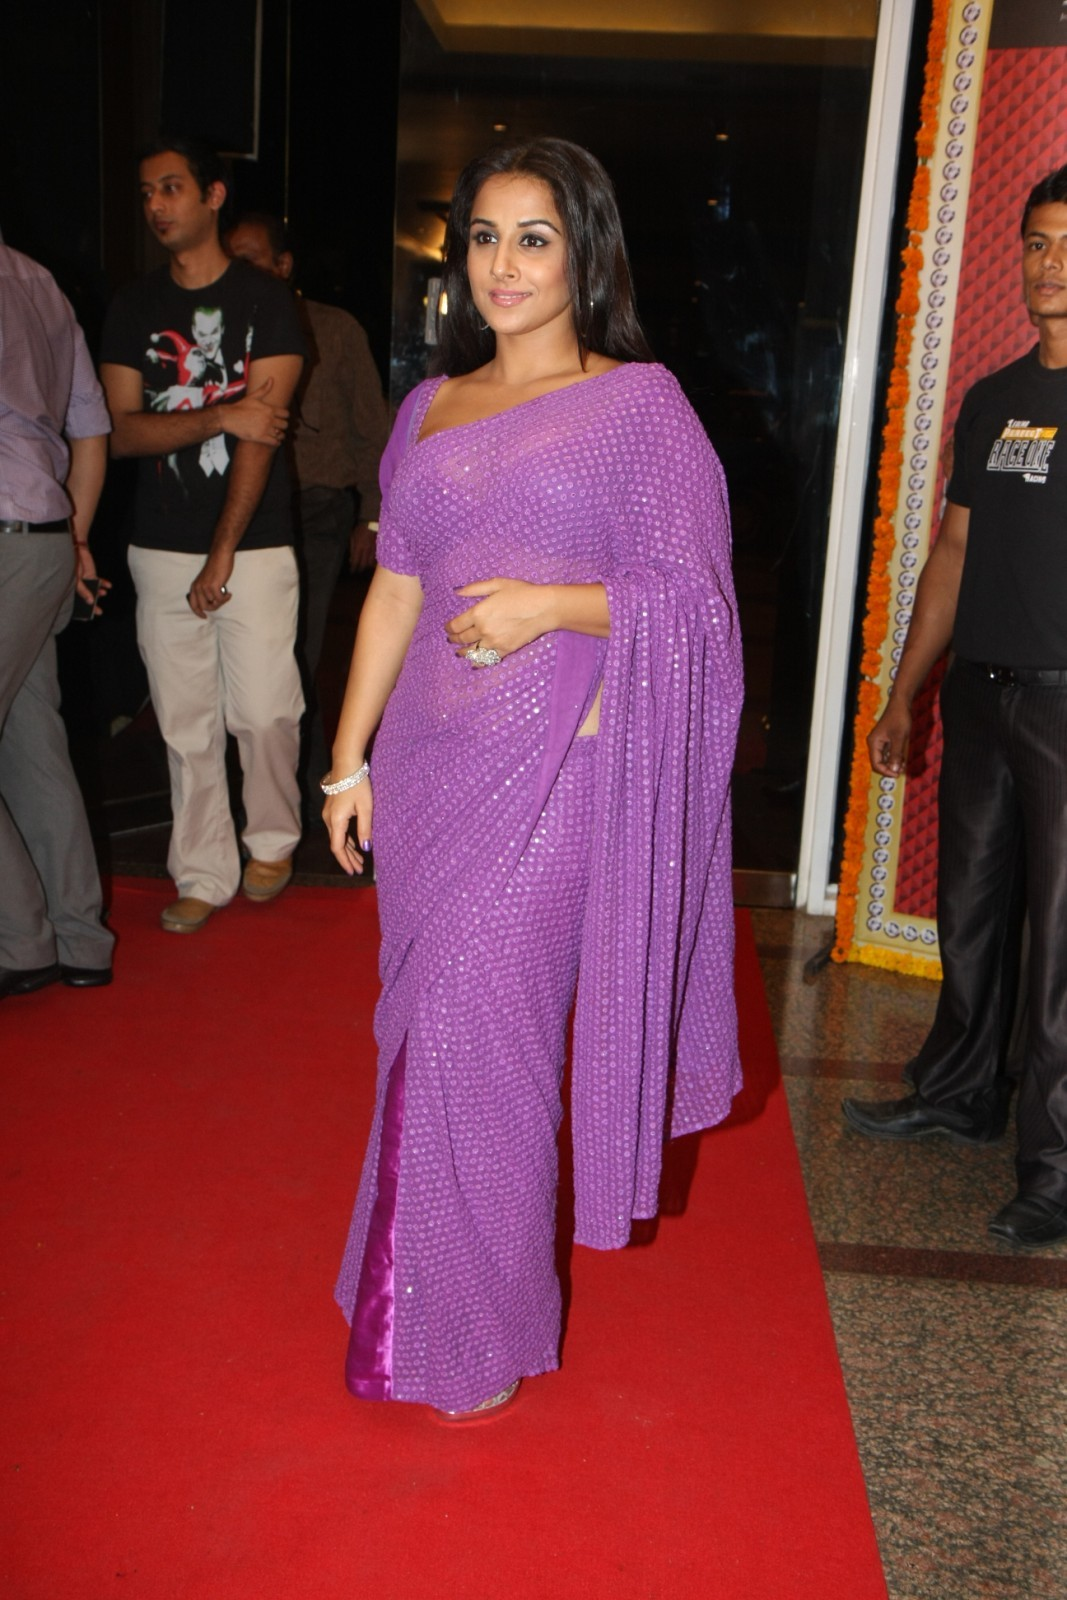 High Quality Bollywood Celebrity Pictures Vidya Balan Sexy In Transparent Saree At The 7Th Anniversary Party Of Star News Show Saas Bahu Aur -4036